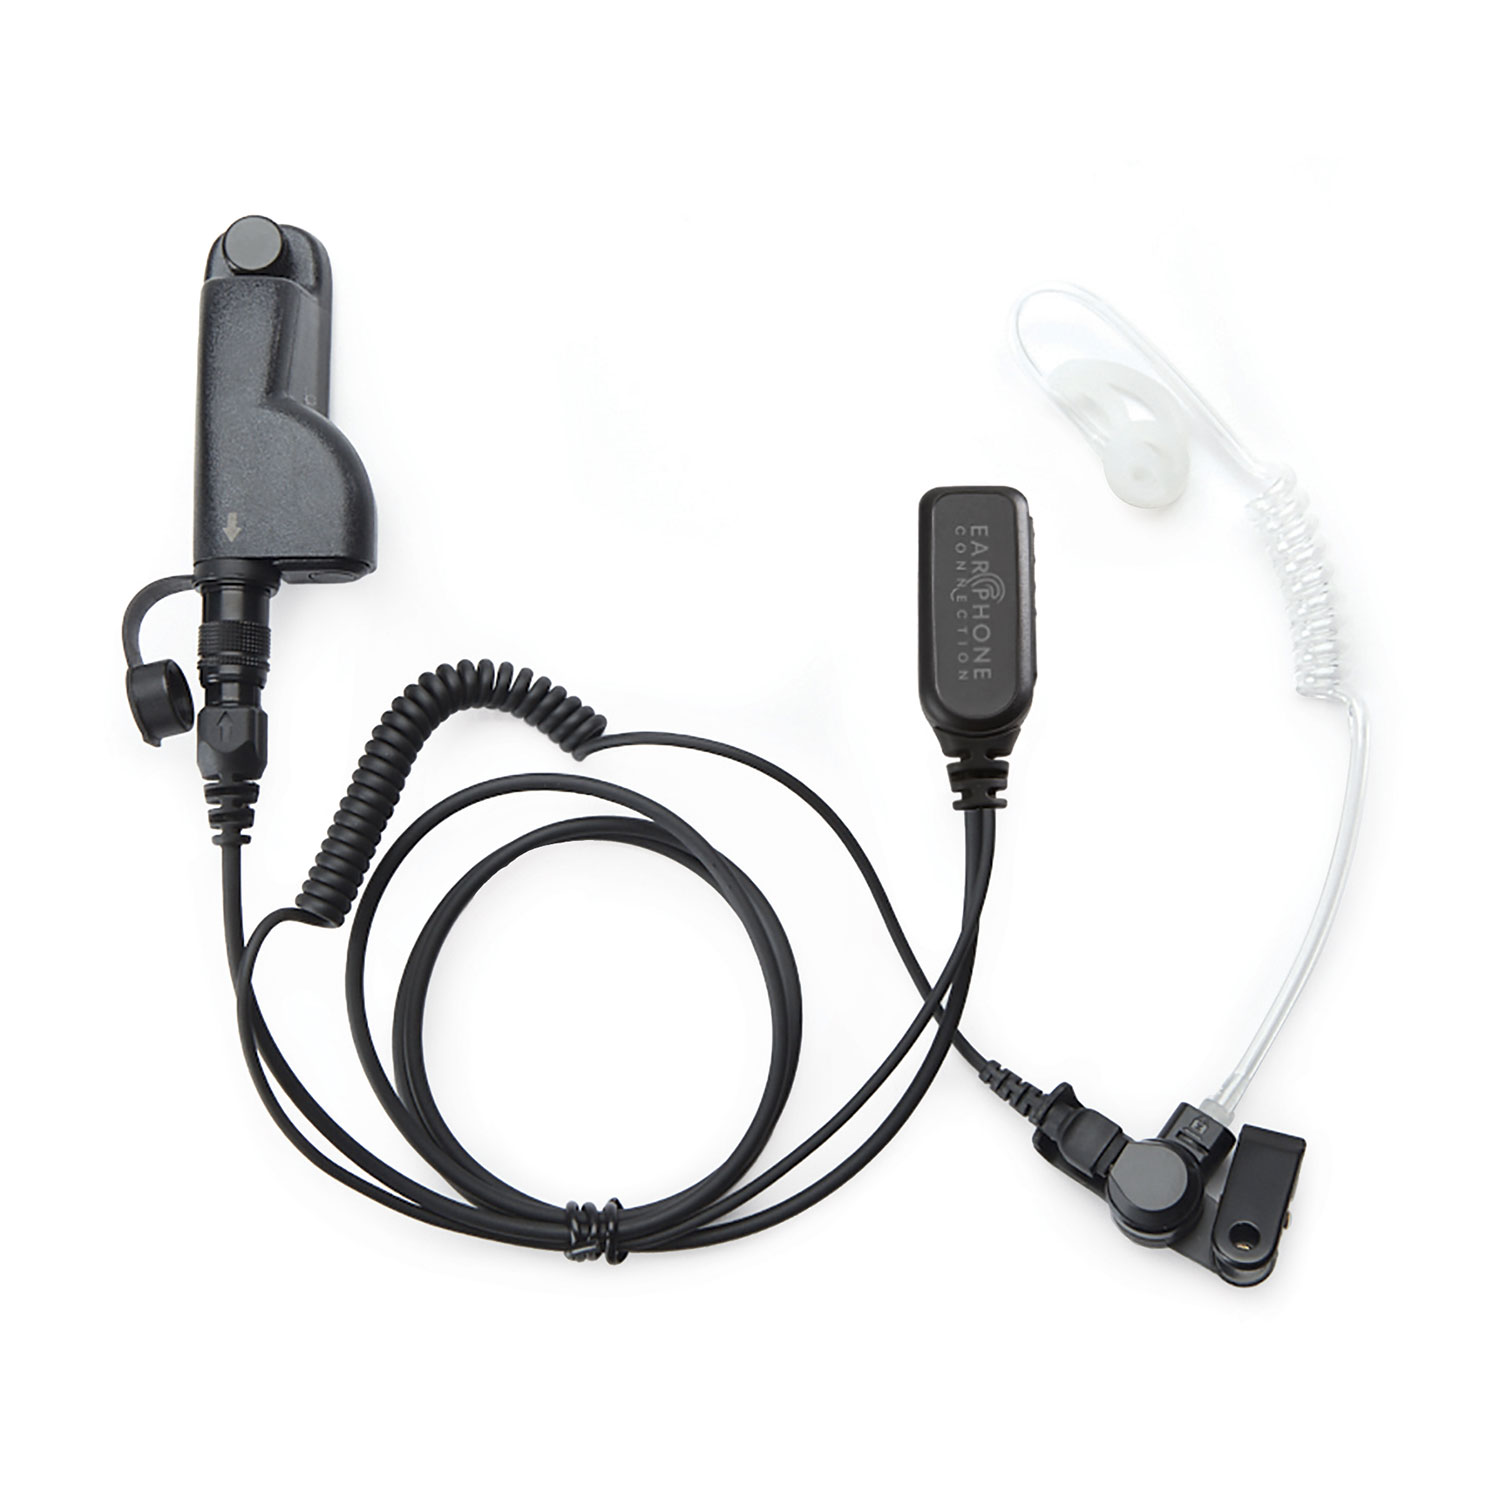 Ear Phone Connection Hawk EP1334 EC Easy Connect Lapel Micro